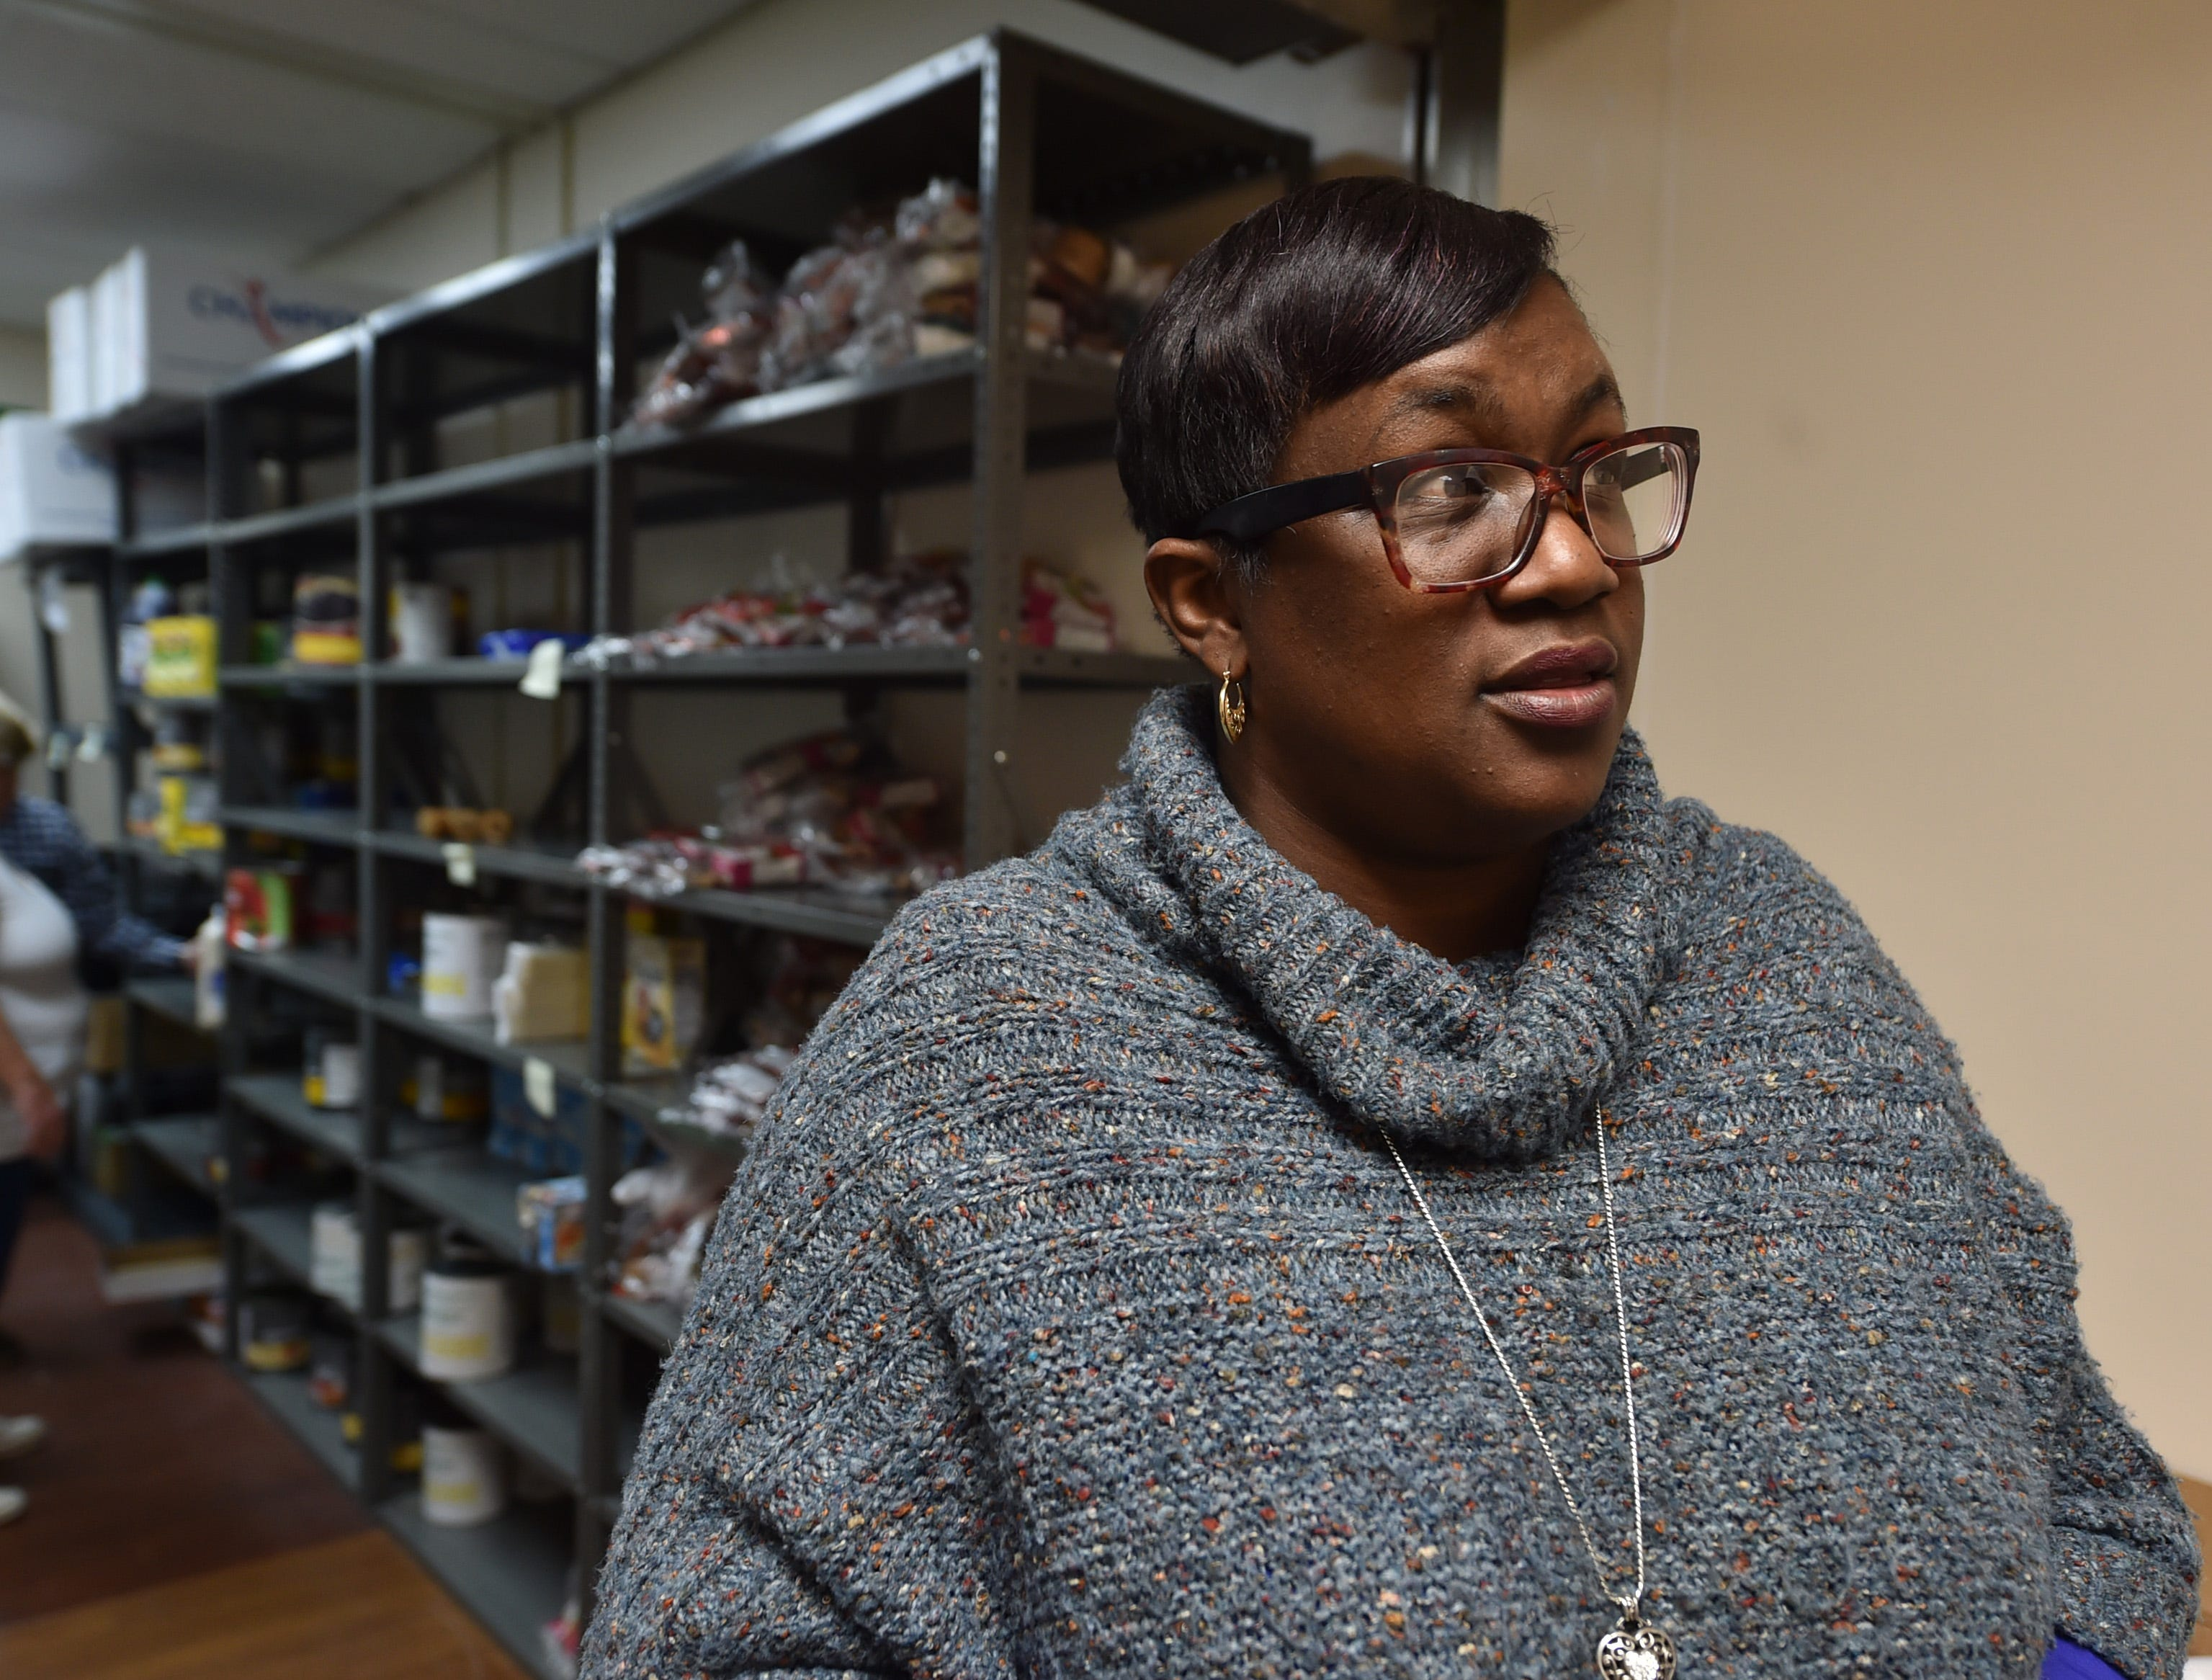 An inside look at the new Jackson pantry providing food for hungry veterans